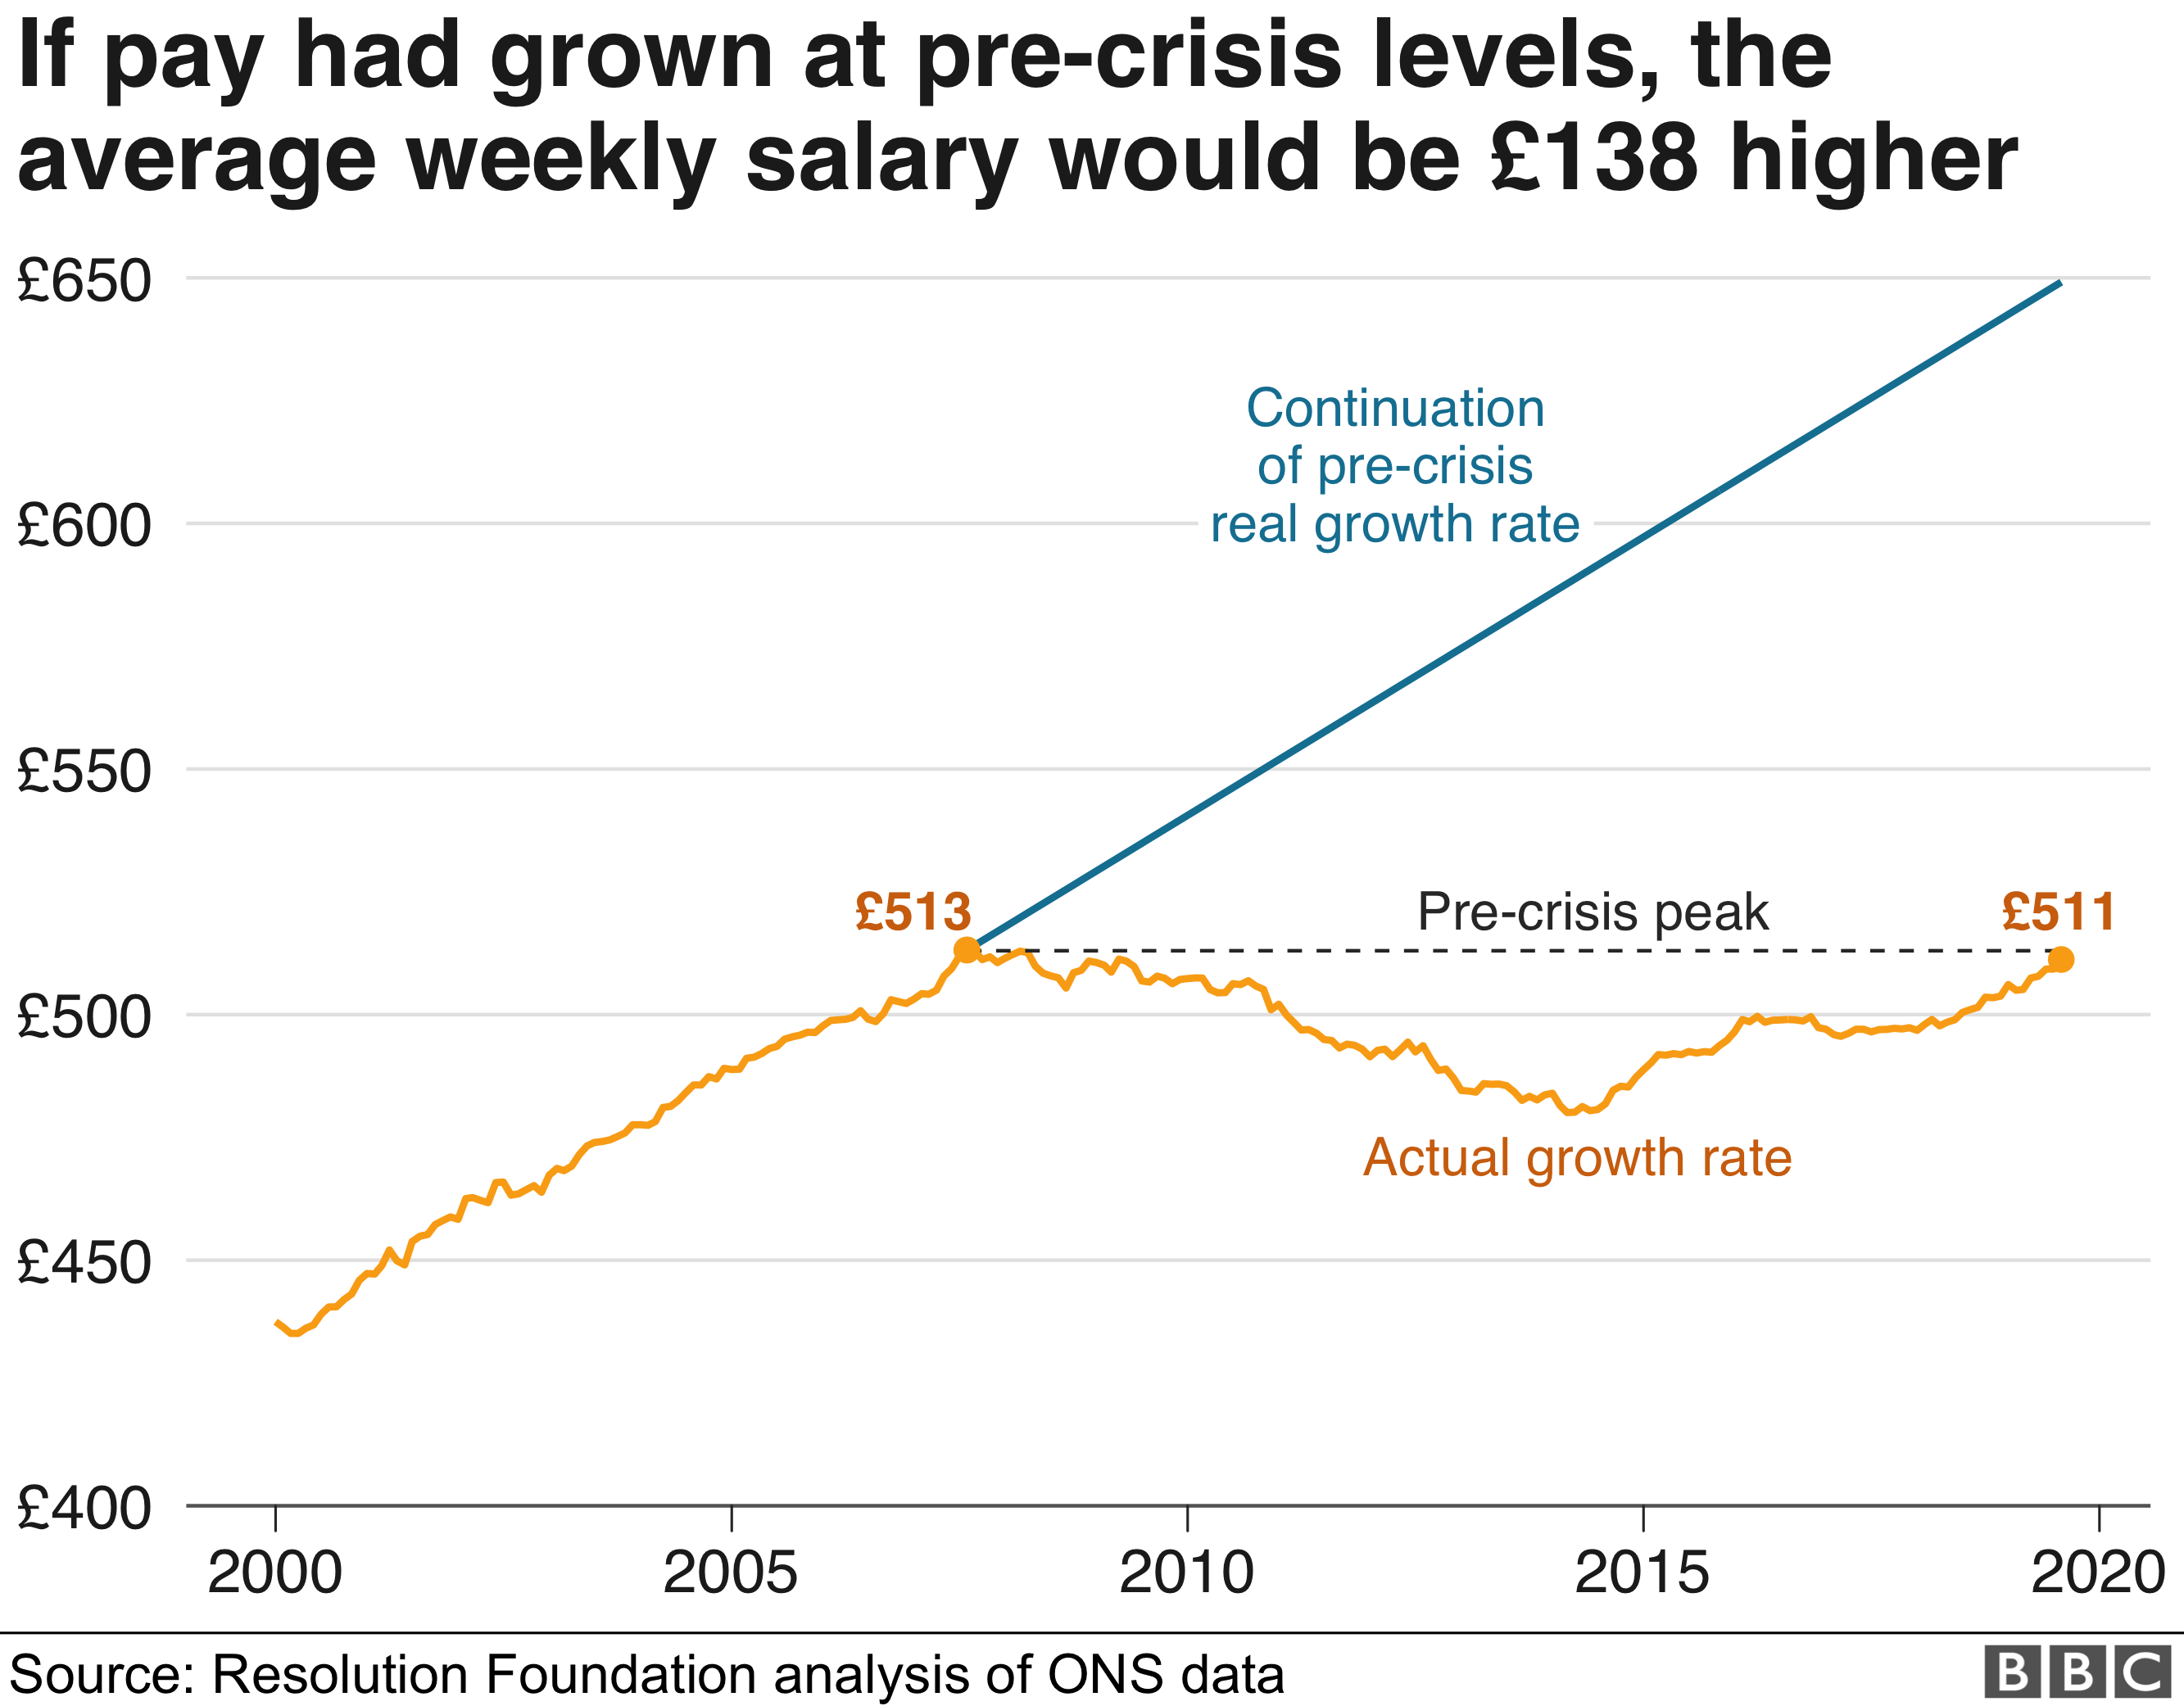 The average weekly salary would be £138 higher if pay had grown at the pre-recession rate